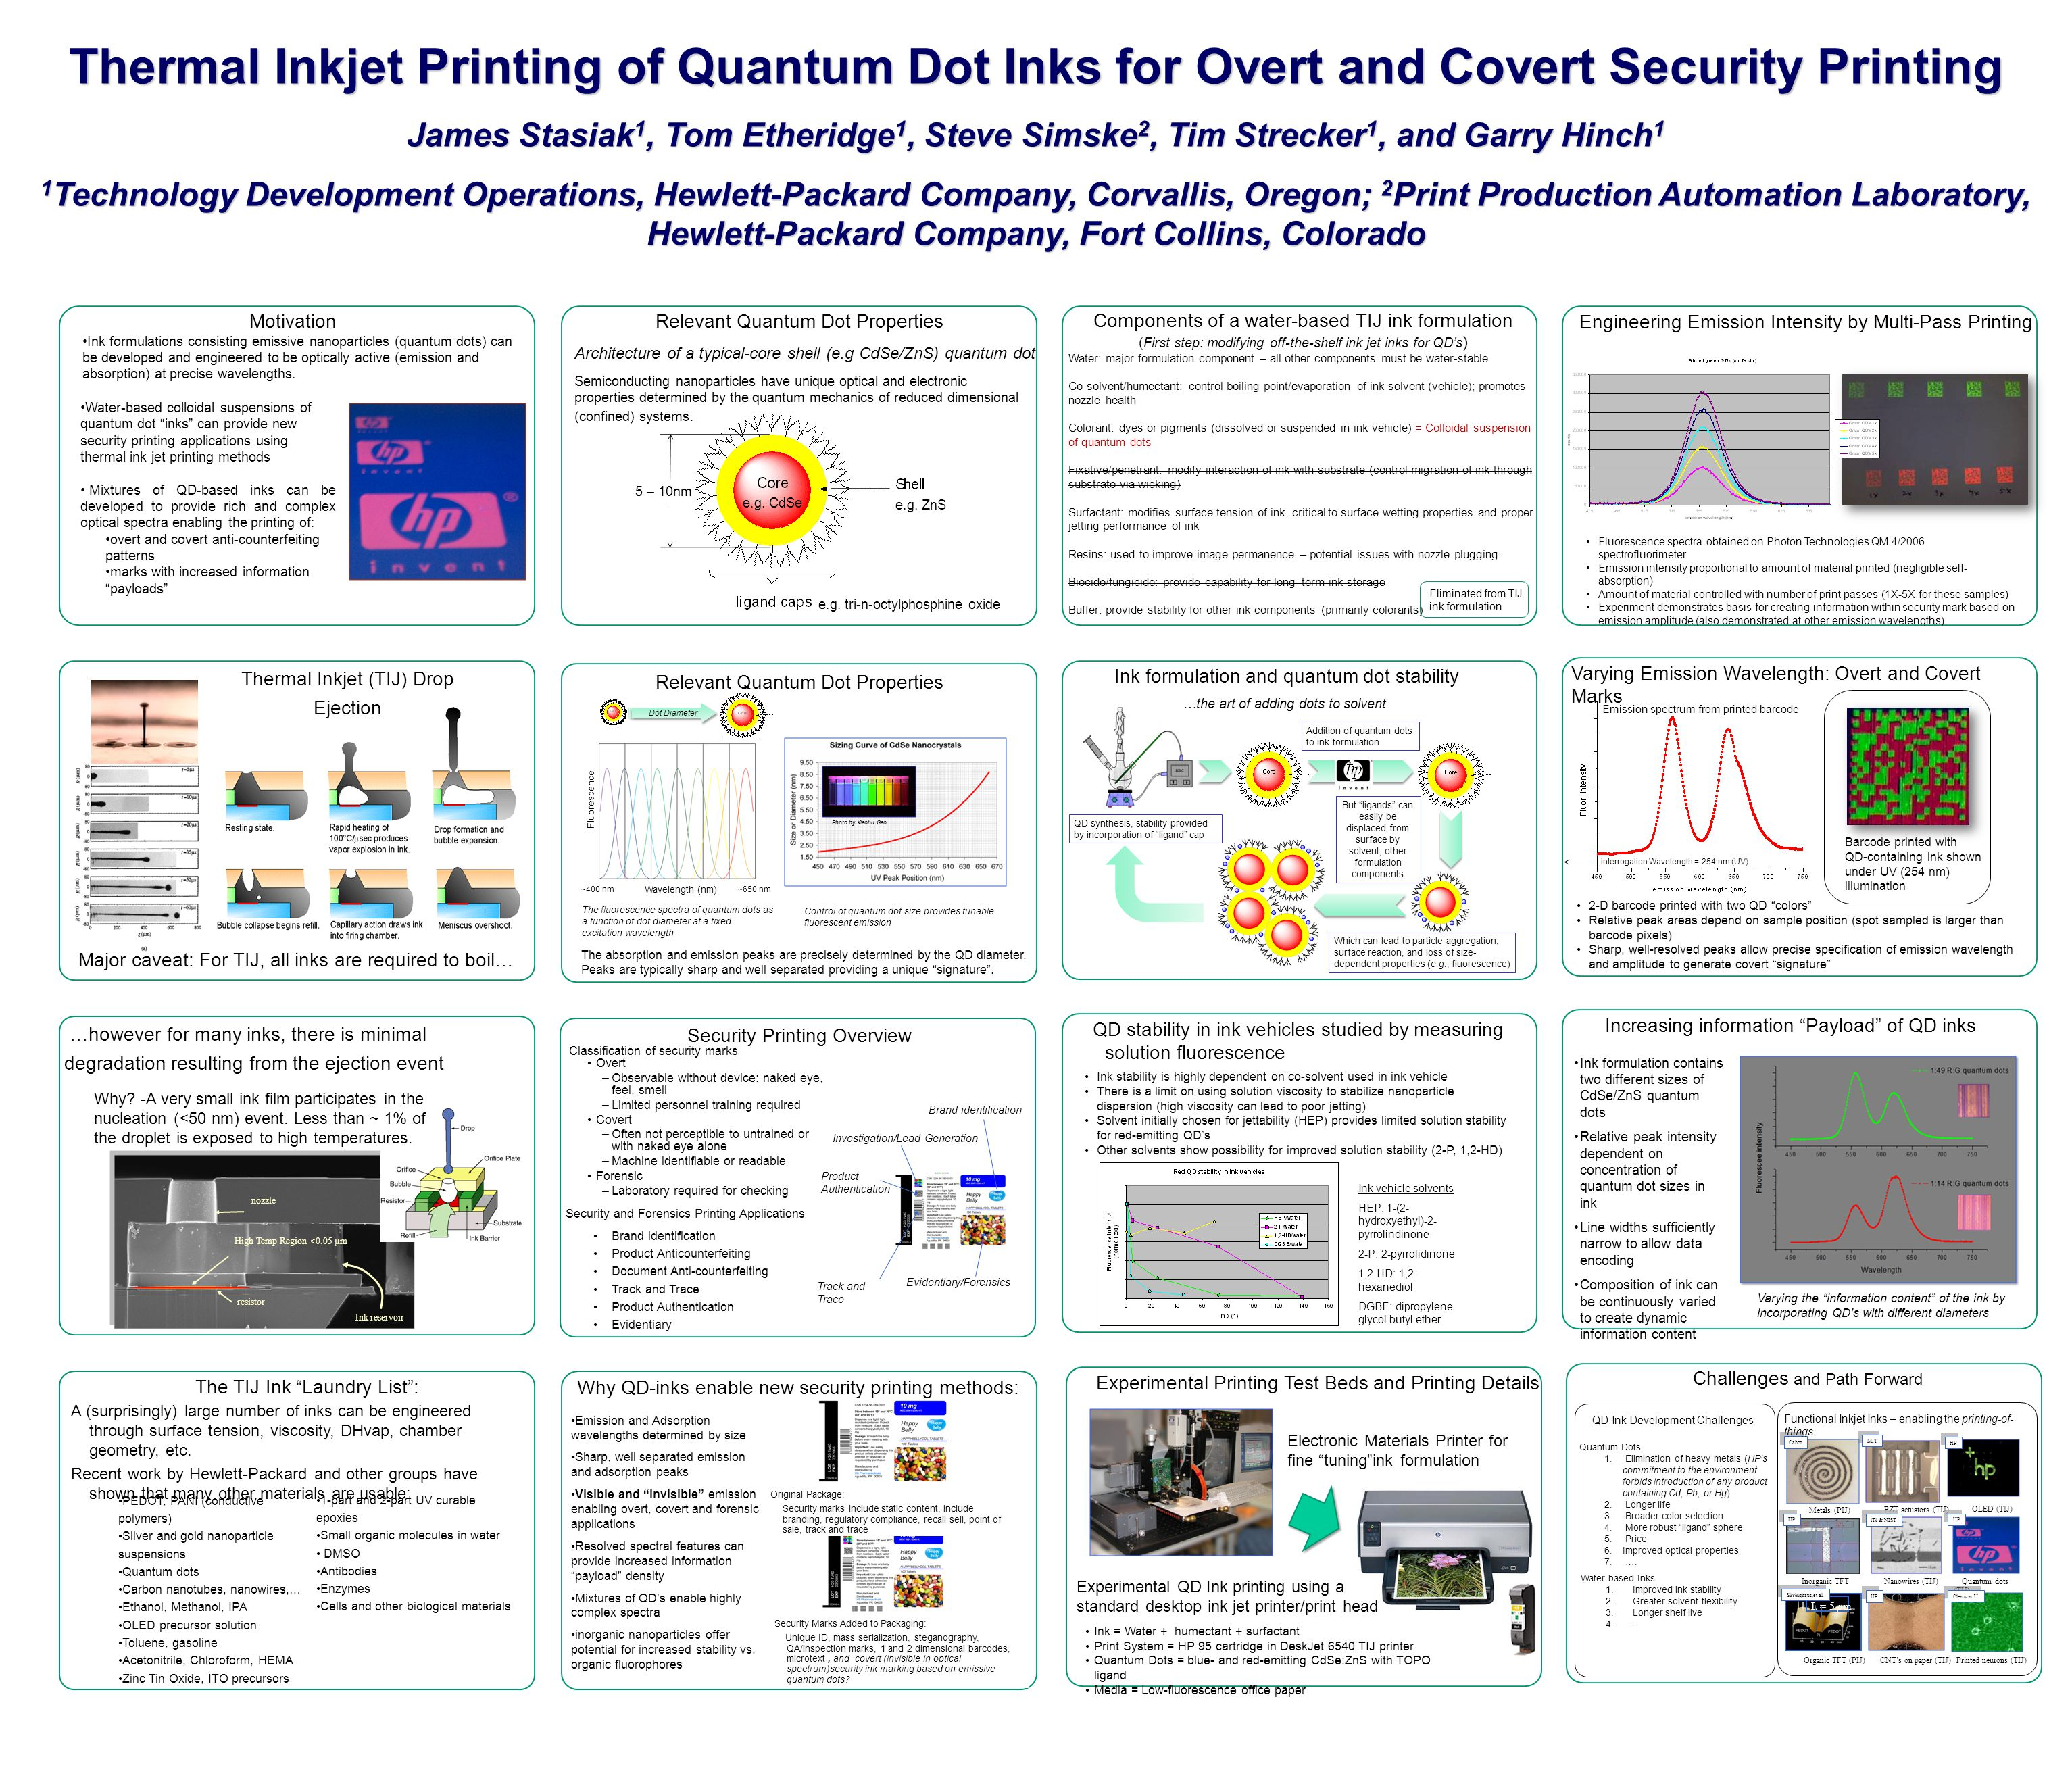 Thermal Inkjet Printing of Quantum Dot Inks for Overt and Covert Security Printing